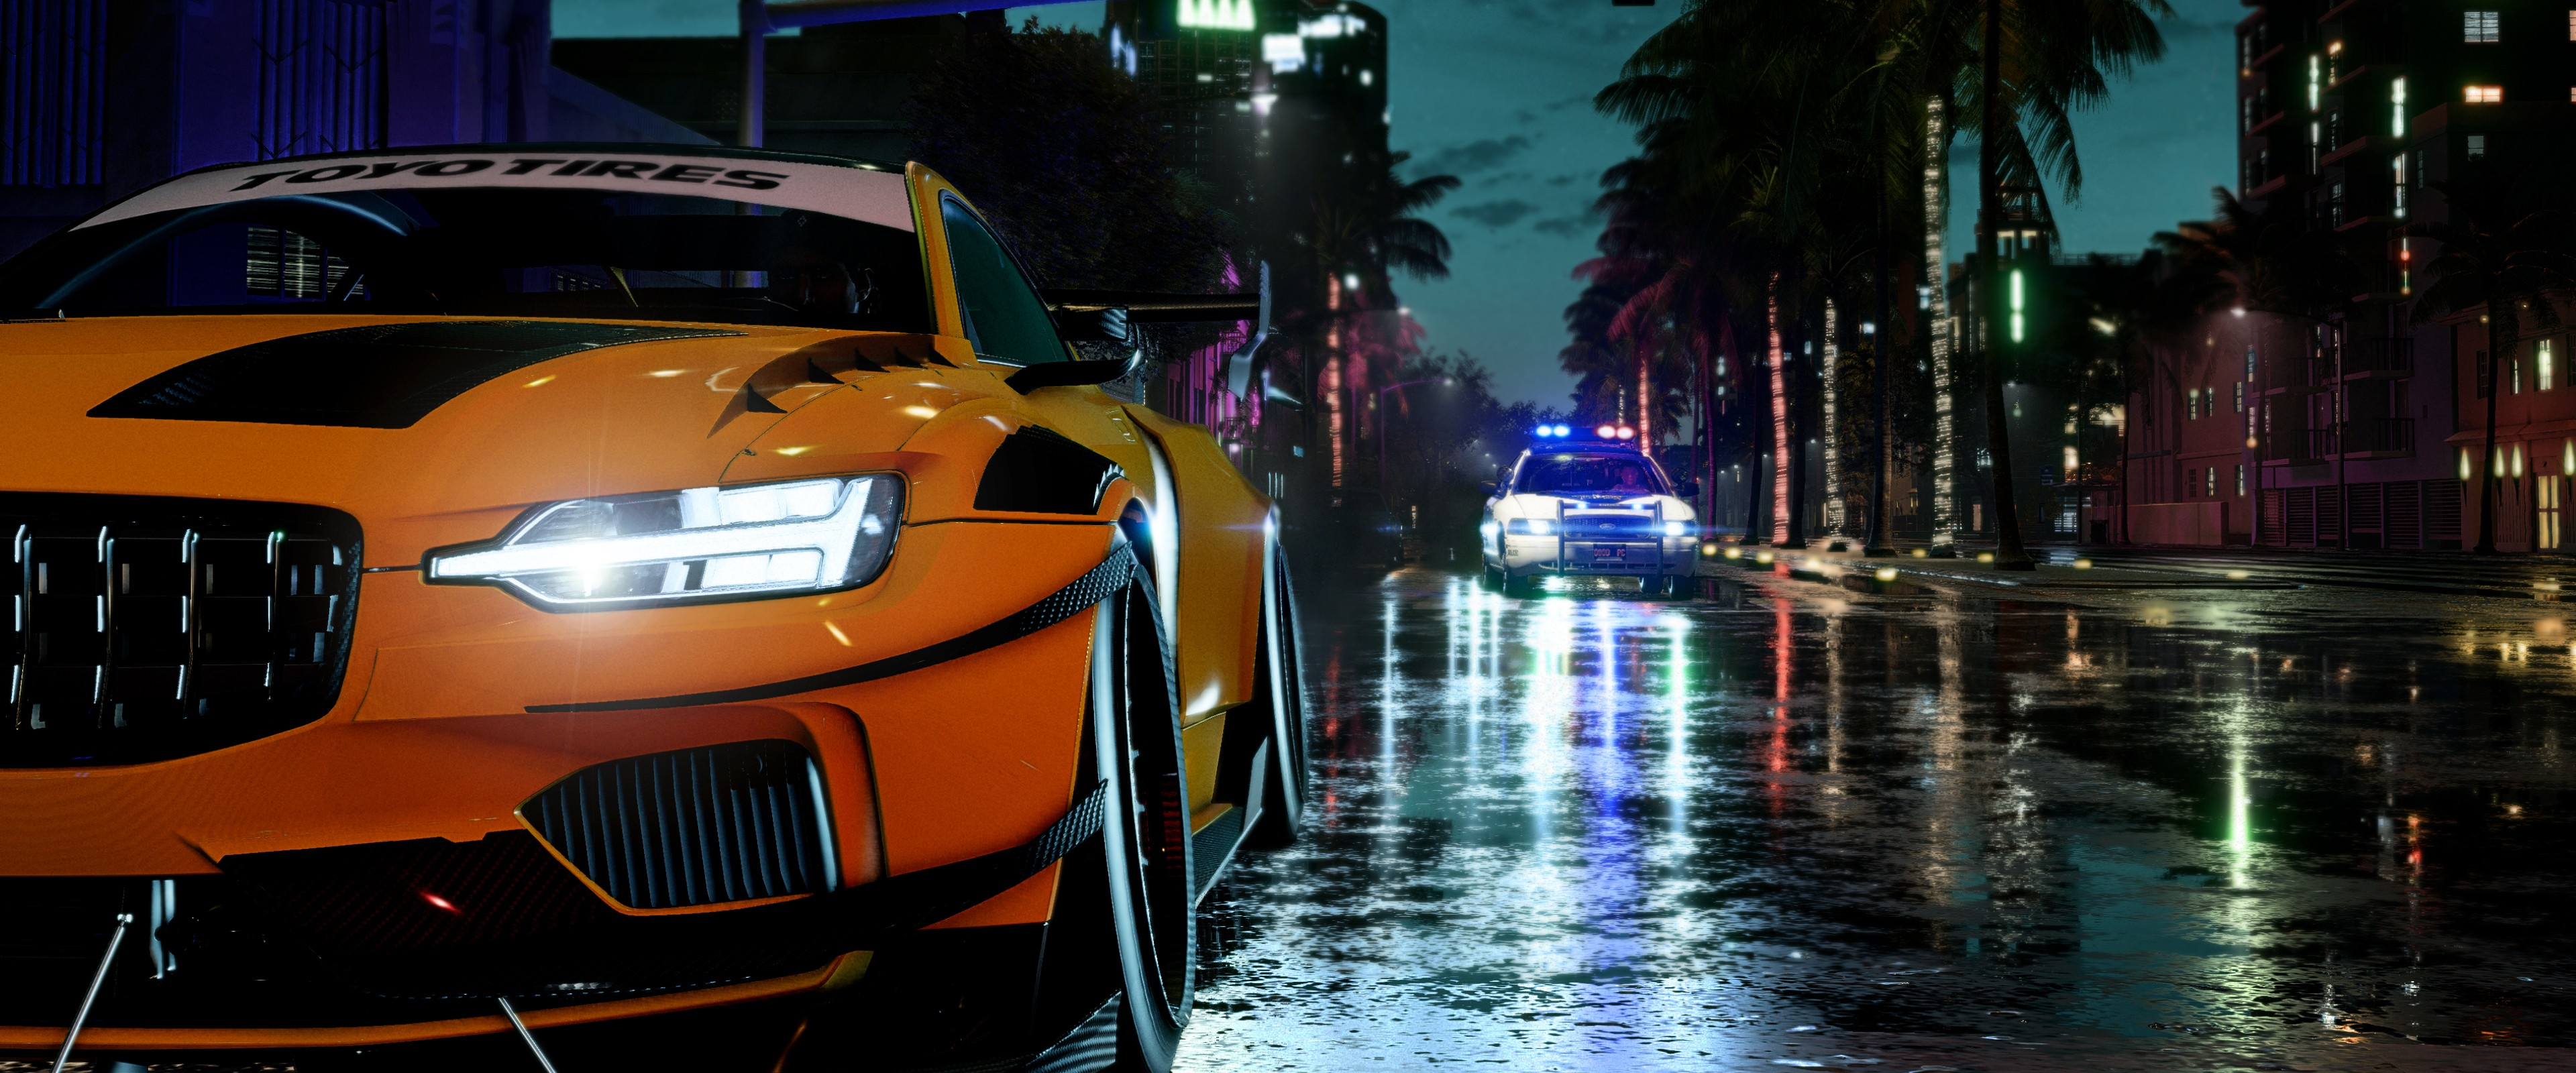 Here Are All The Games Coming To Microsoft Xbox One This Week, Need for Speed Heat, Wizards of Brandel, Football Game